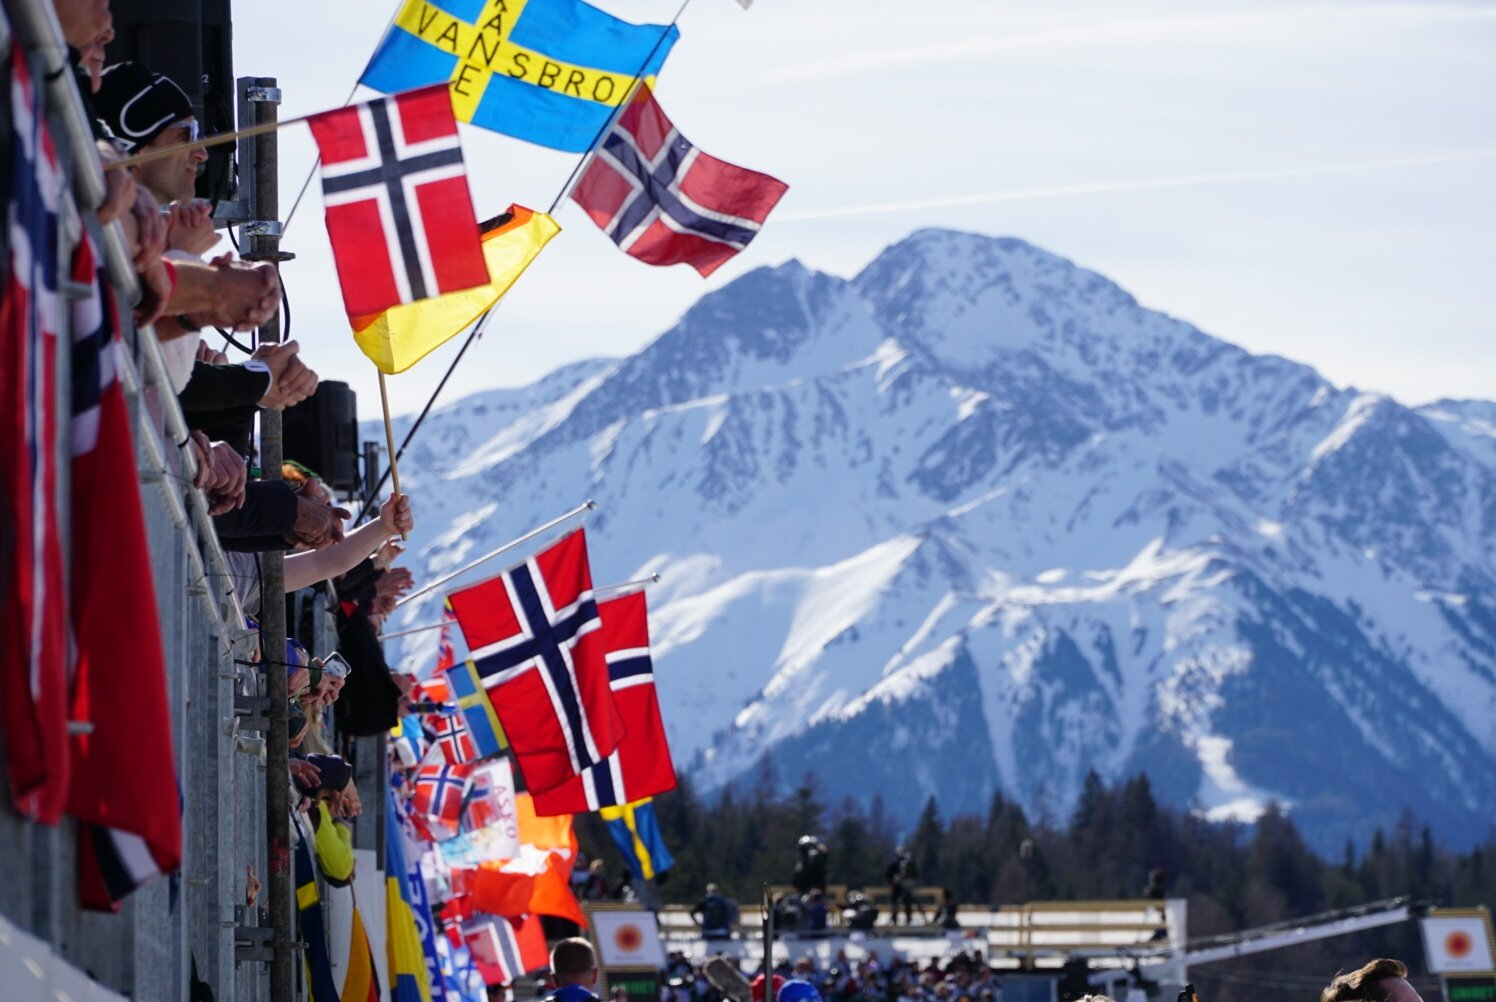 Full stands and big mountains at the Seefeld World Championships